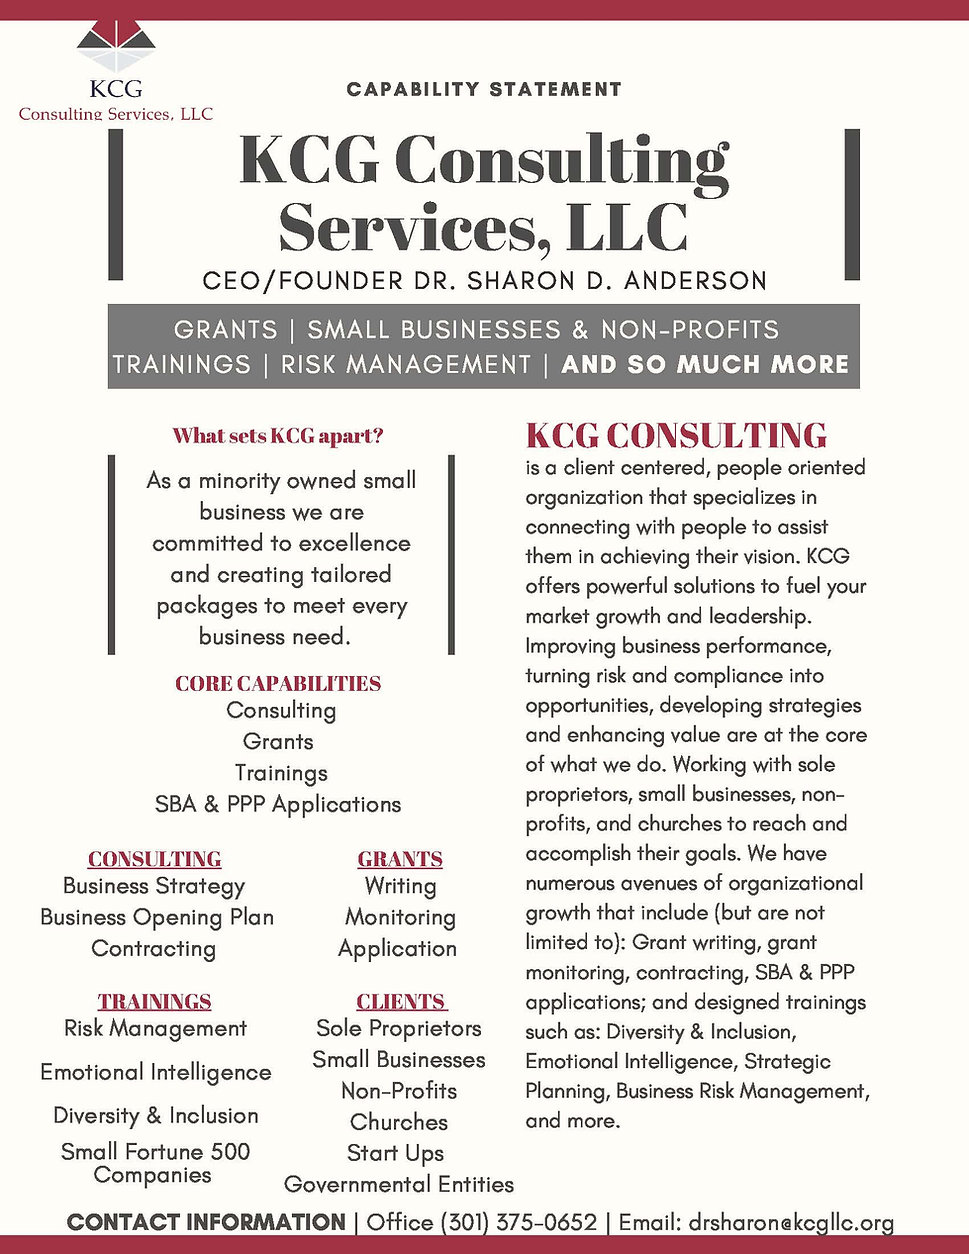 New KCG Capability Statement_Page_1.jpg